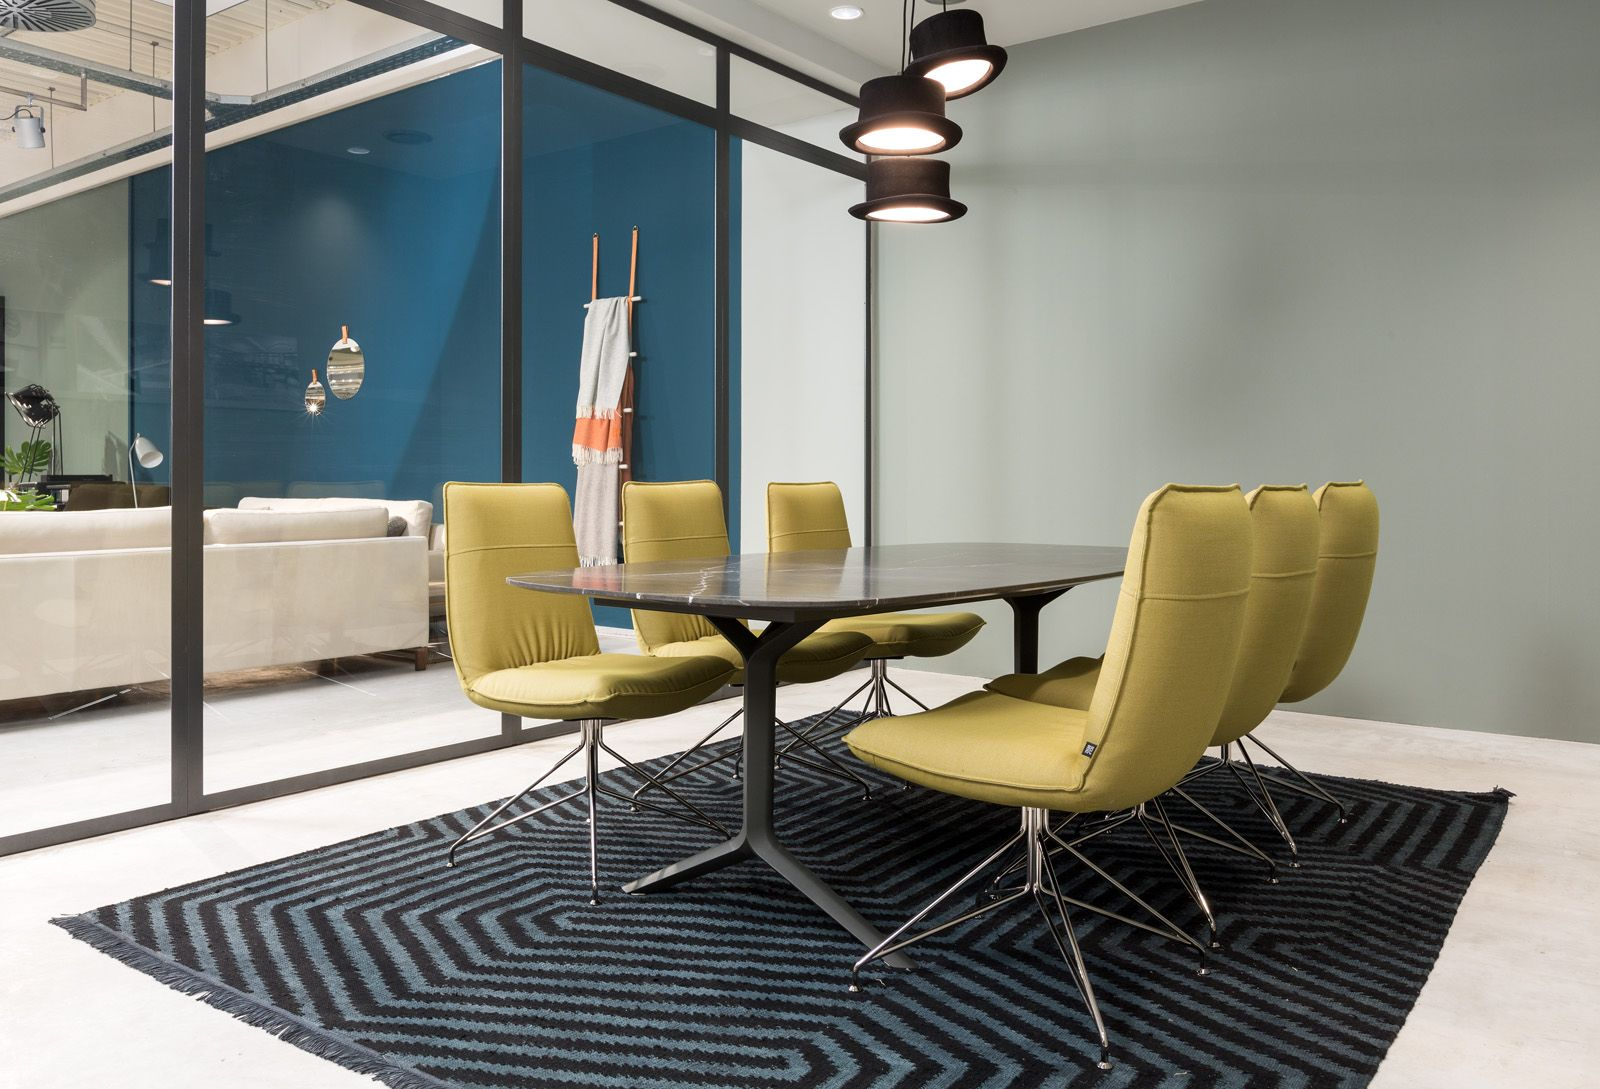 The Rolf Benz 966 is a timeless beauty in any dining room